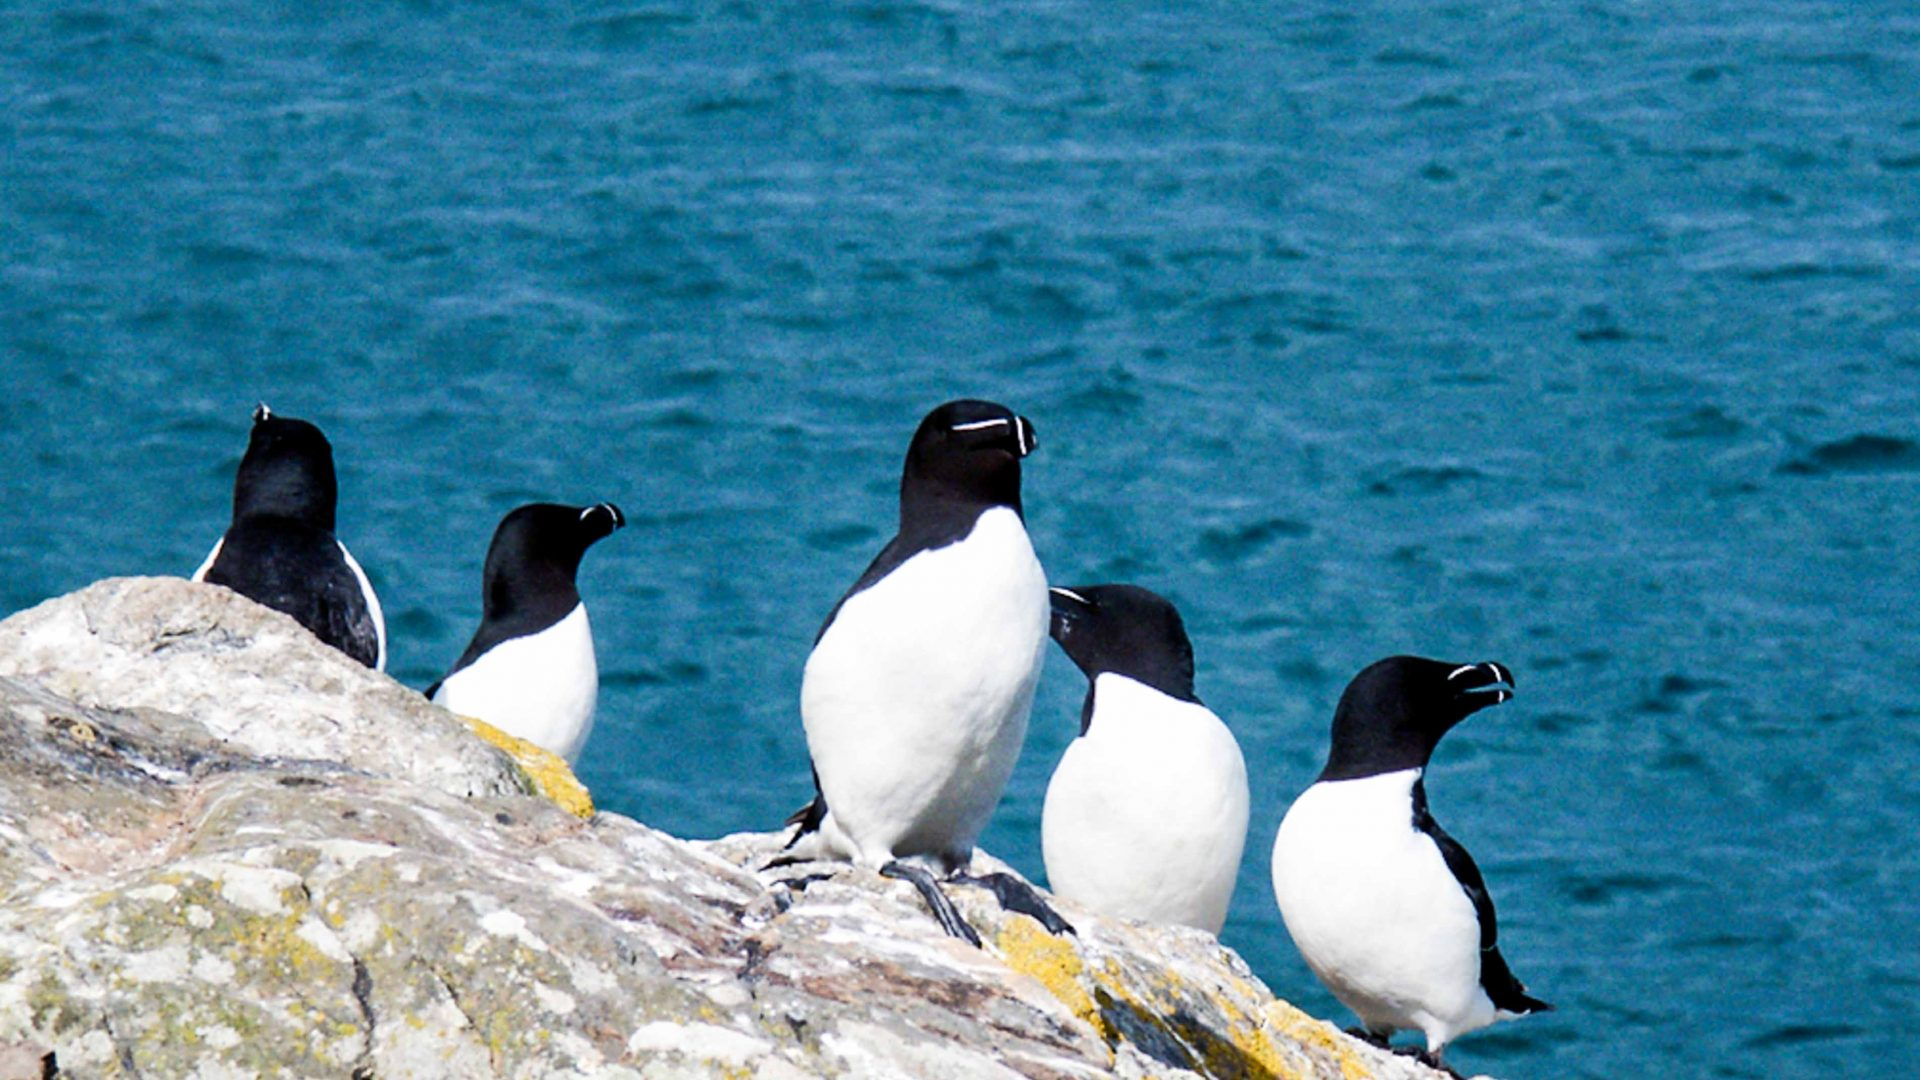 Penguins are one of the many wildlife you'll likely come across on this coasteering adventure.